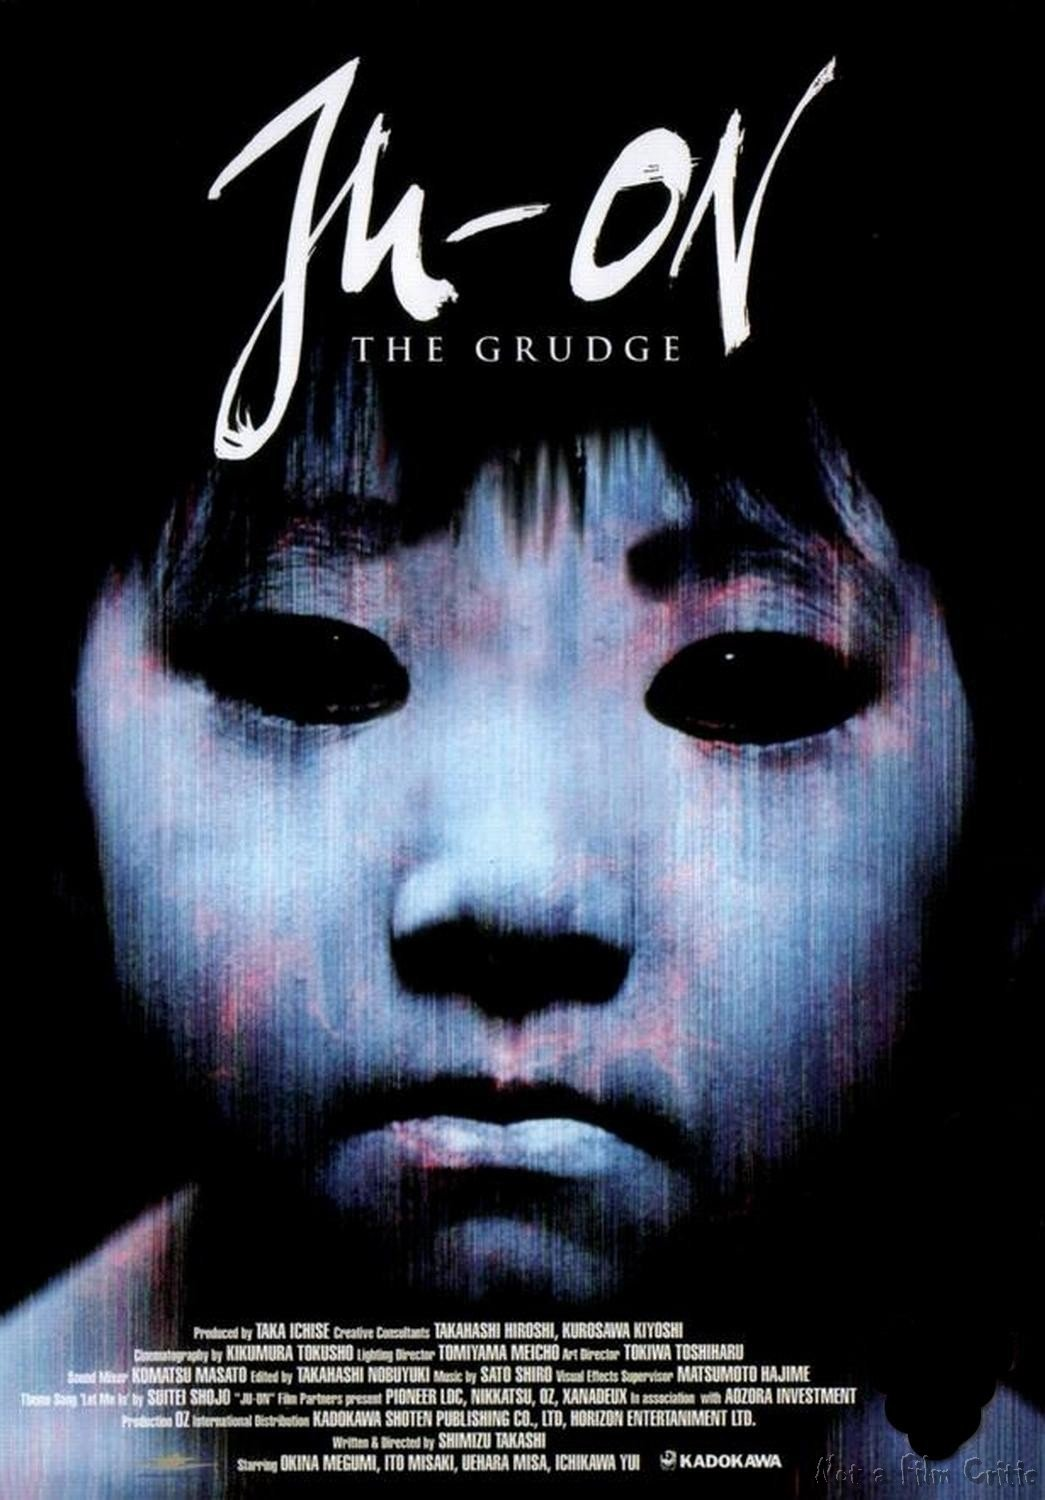 https://vignette1.wikia.nocookie.net/ju-on-the-grudge/images/e/e7/Ju-on-the-grudge-movie-poster-2002.jpg/revision/latest?cb=20140608000159